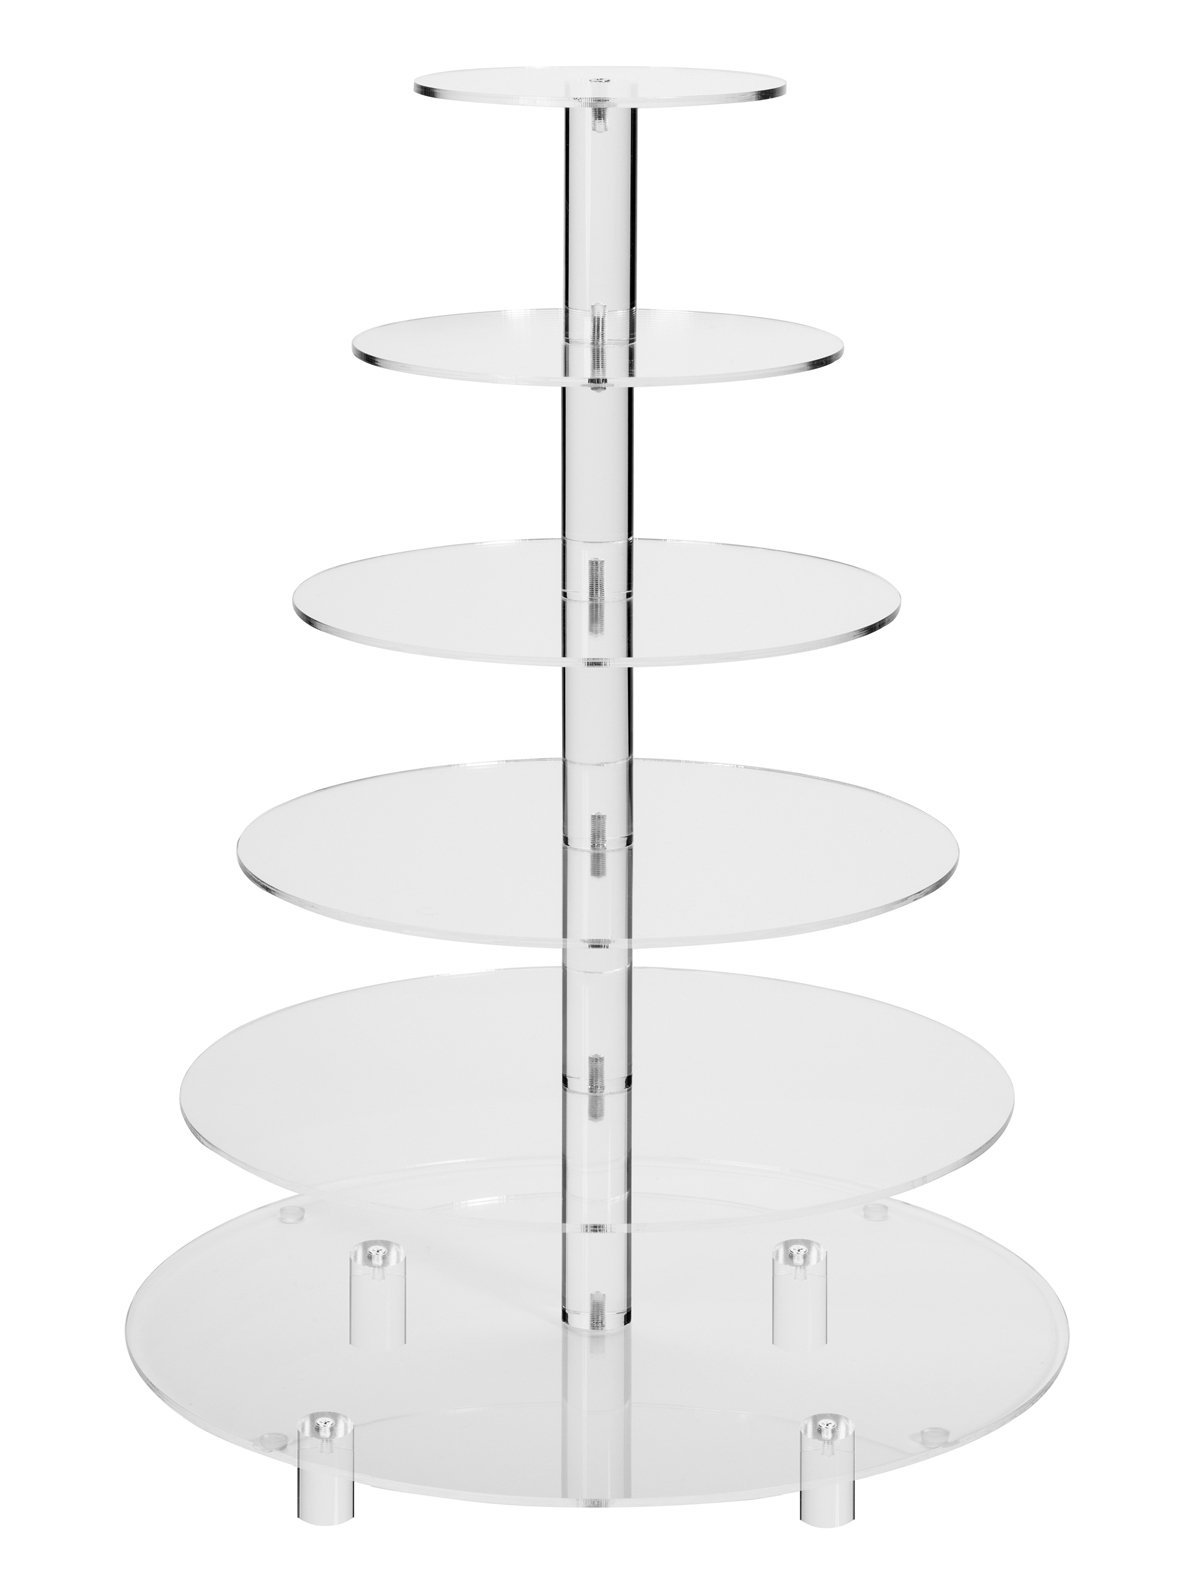 Jusalpha 6 Tier Round Acrylic Cupcake Stand-cake stand-dessert stand, cupcake Tower 6RFs (6 Tier With Base) (6RF-small) by Jusalpha (Image #1)